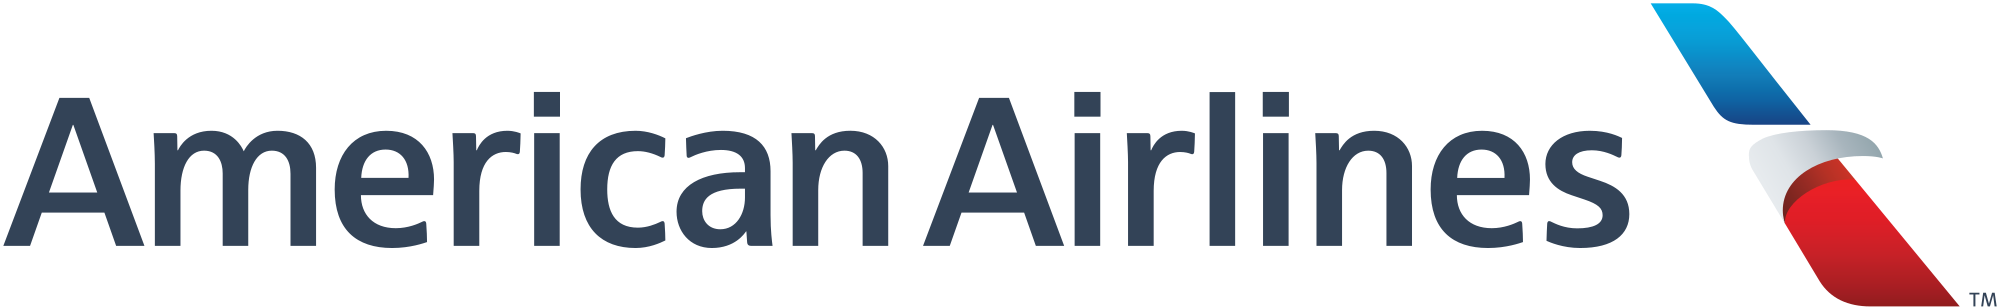 American_Airlines_logo.svg